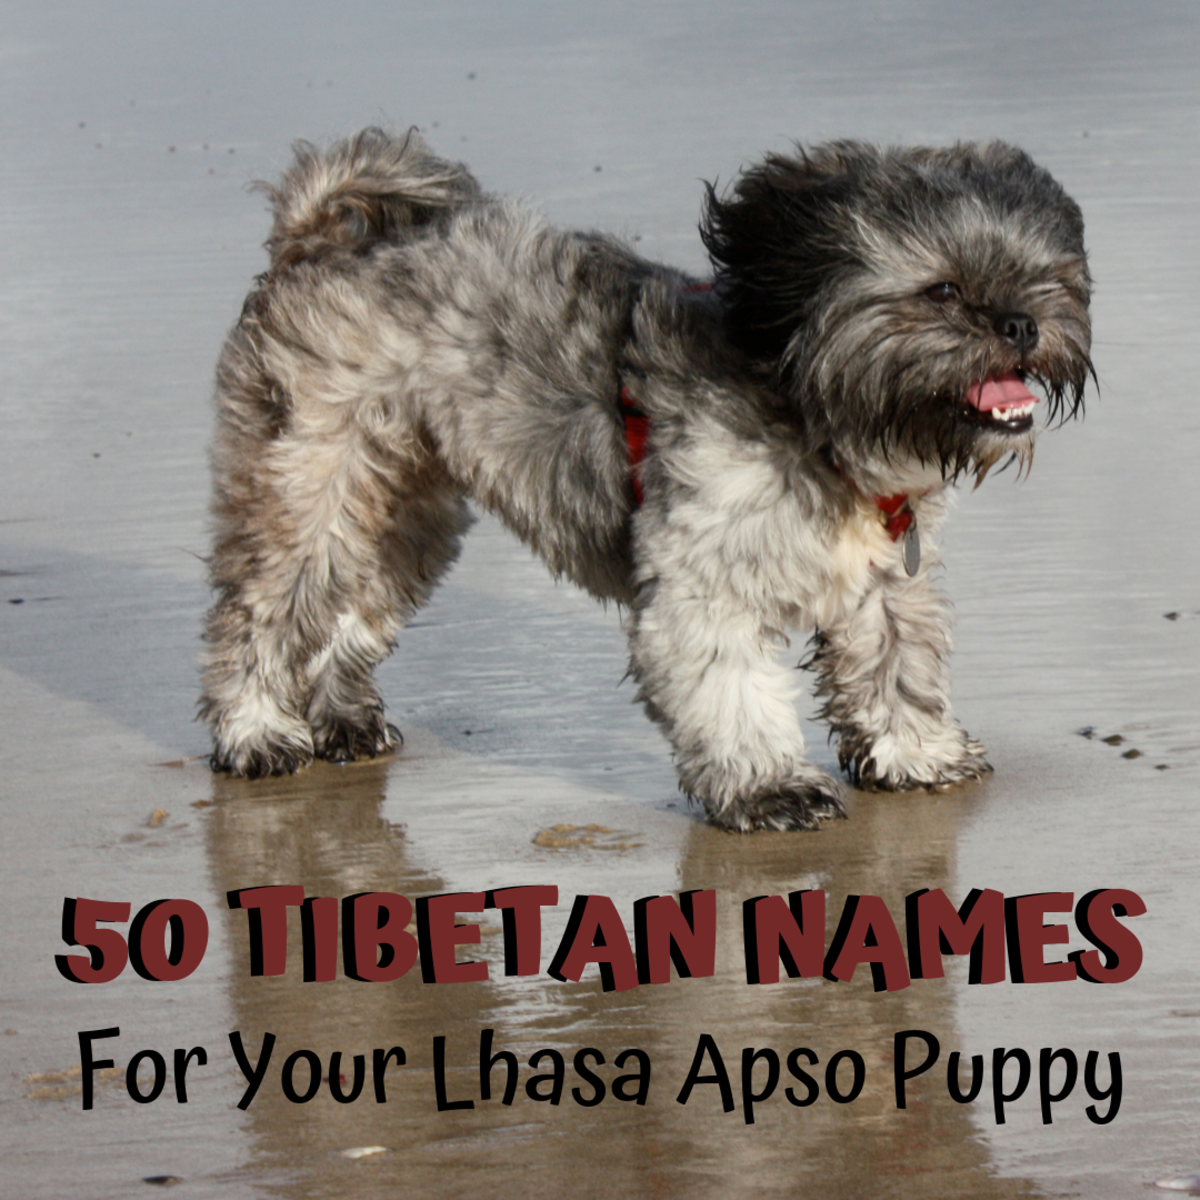 Since Lhasa Apsos are a Tibetan breed, why not give yours an authentic Tibetan name?